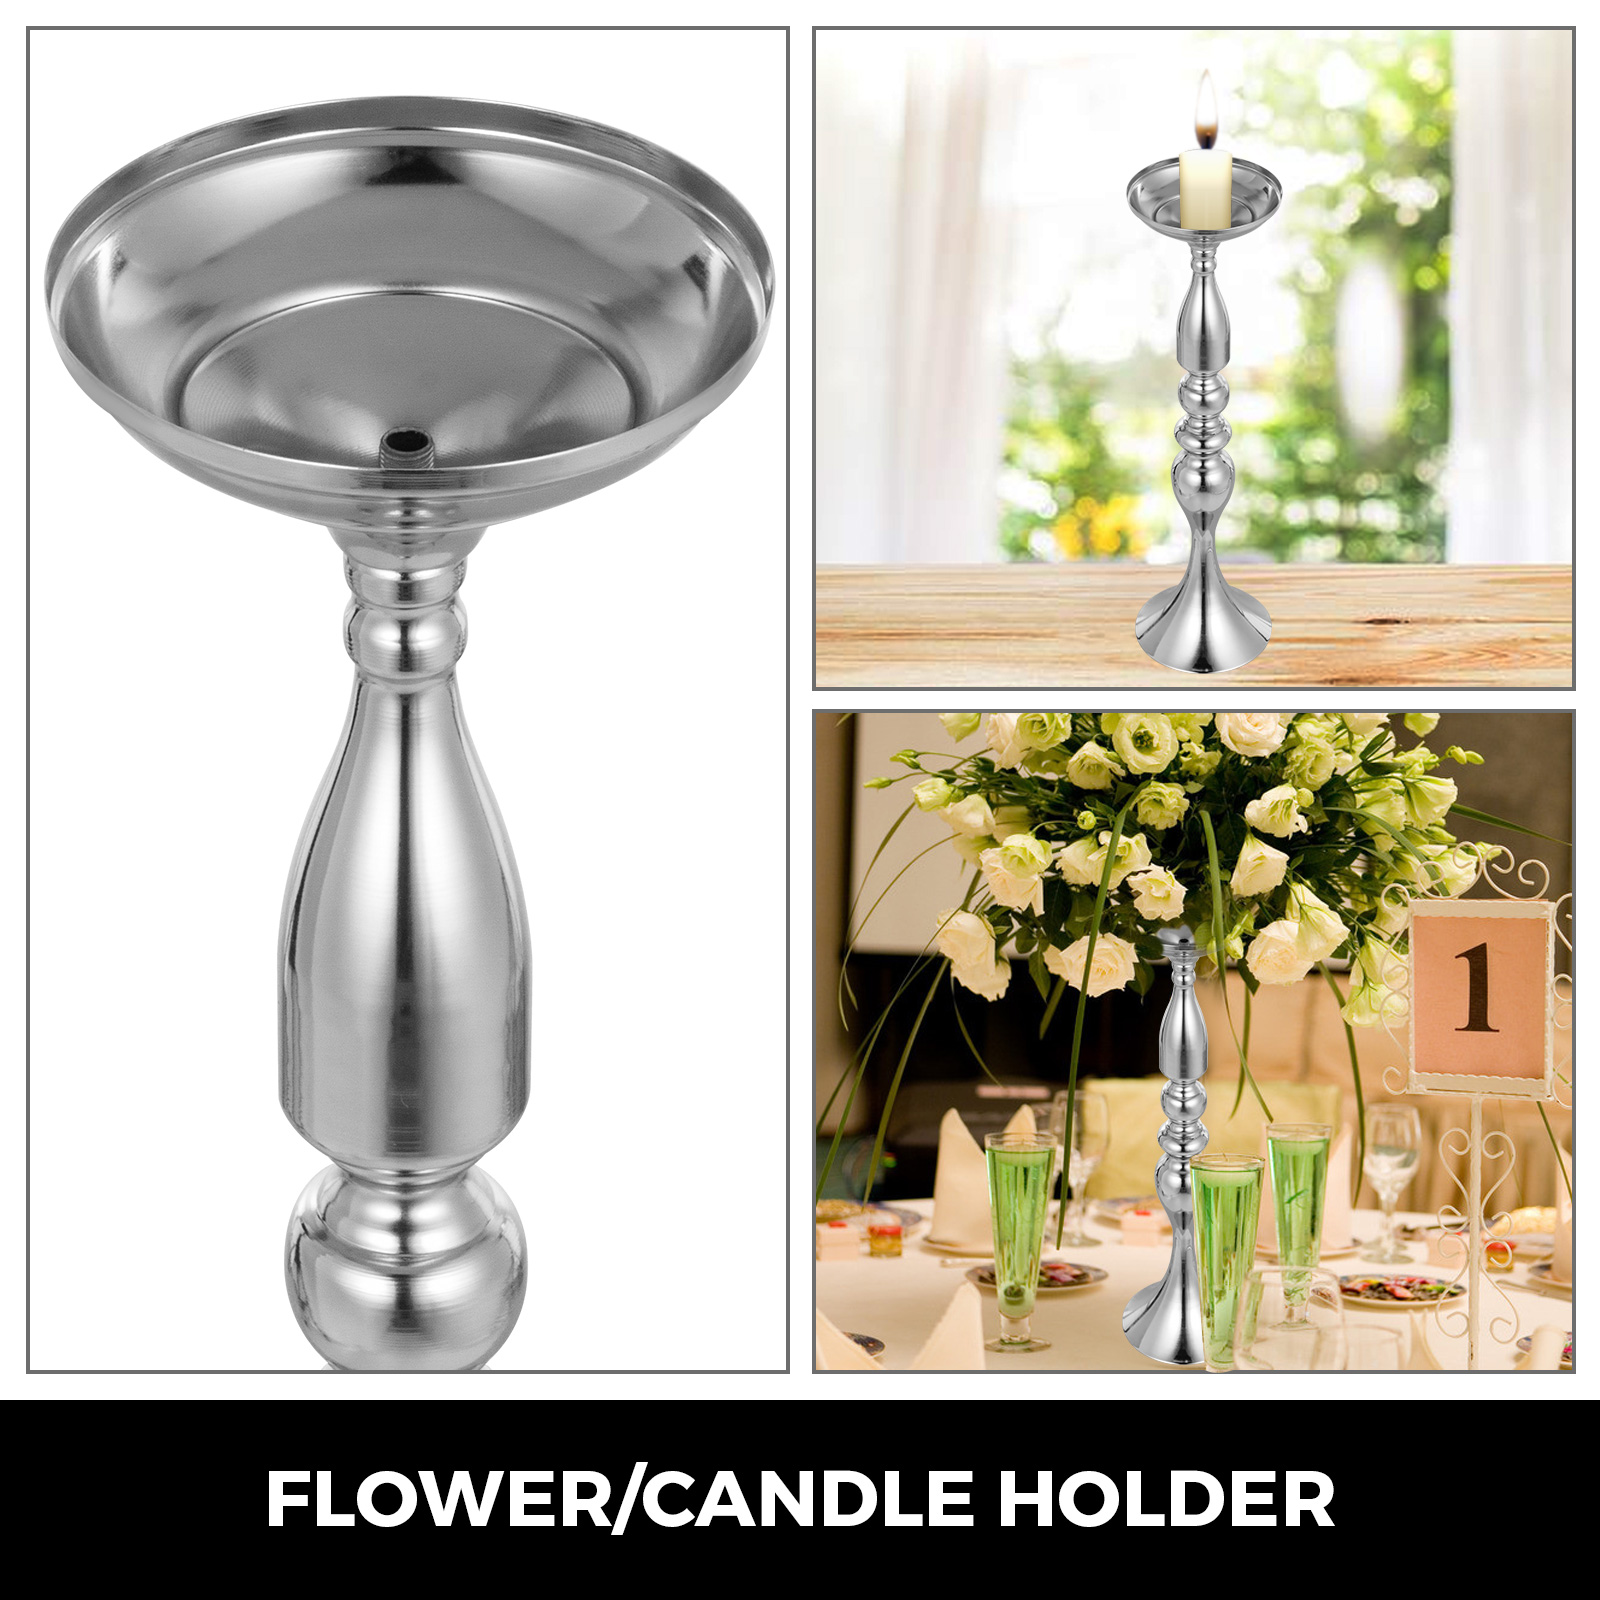 Flower-Rack-for-Wedding-Metal-Candle-Stand-4-11pcs-Centerpiece-Flower-Vase thumbnail 123